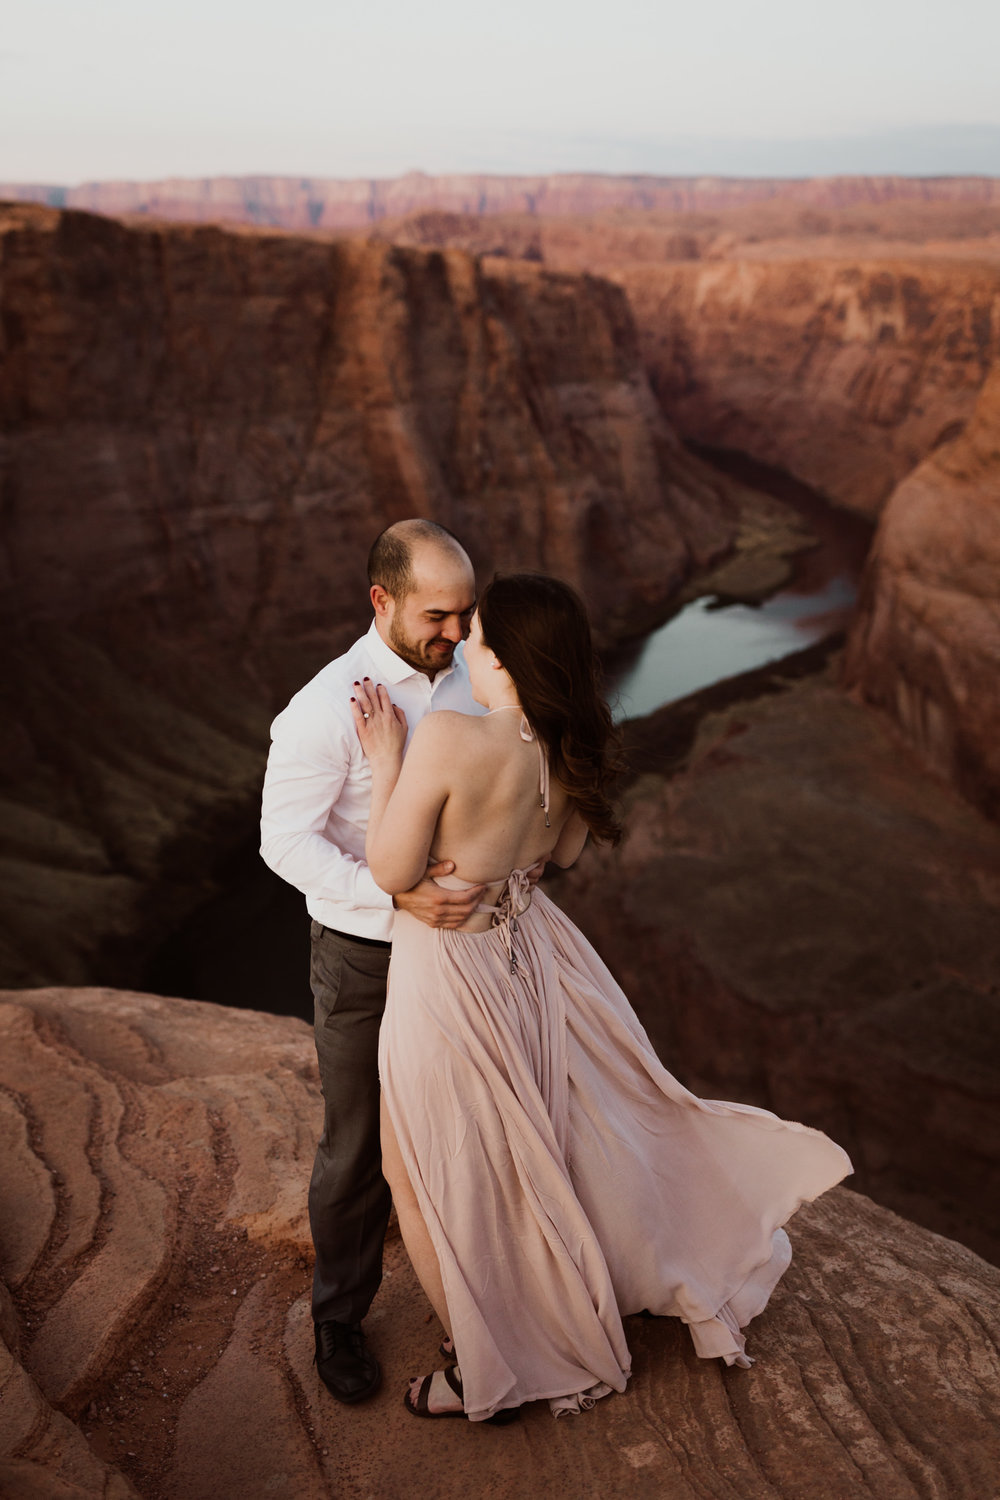 glen-canyon-arizona-adventure-engagements-10.jpg